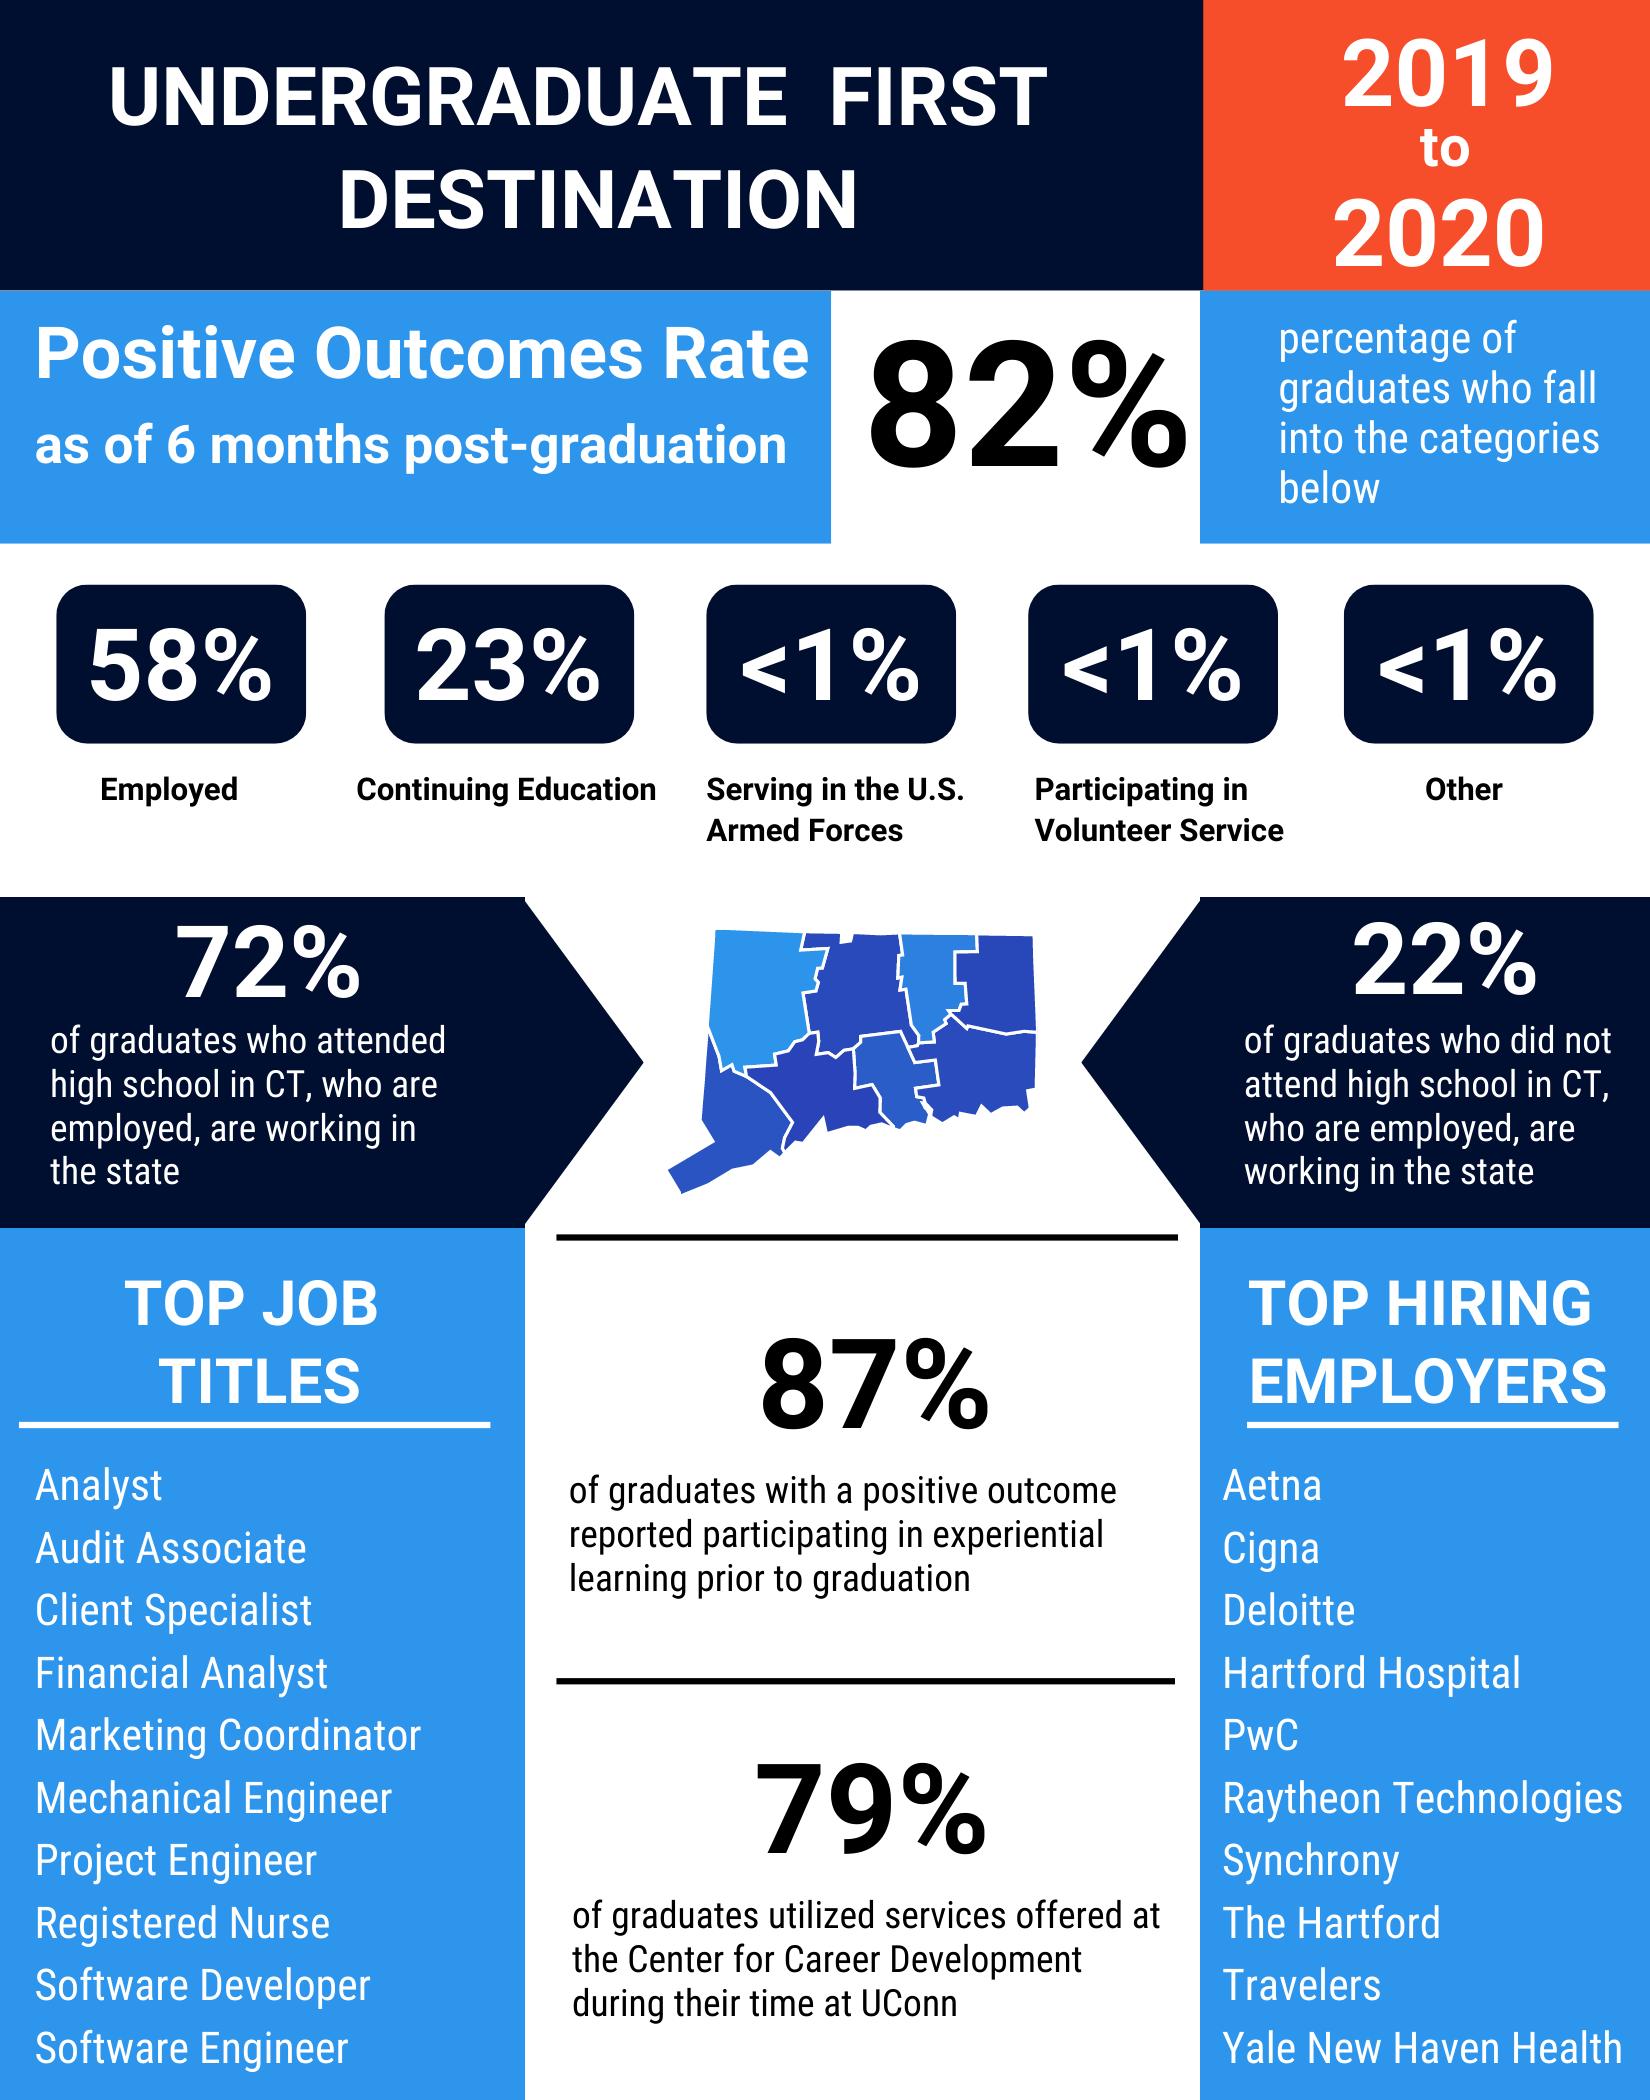 2020 First Destination Outcomes for UConn Undergraduate Students